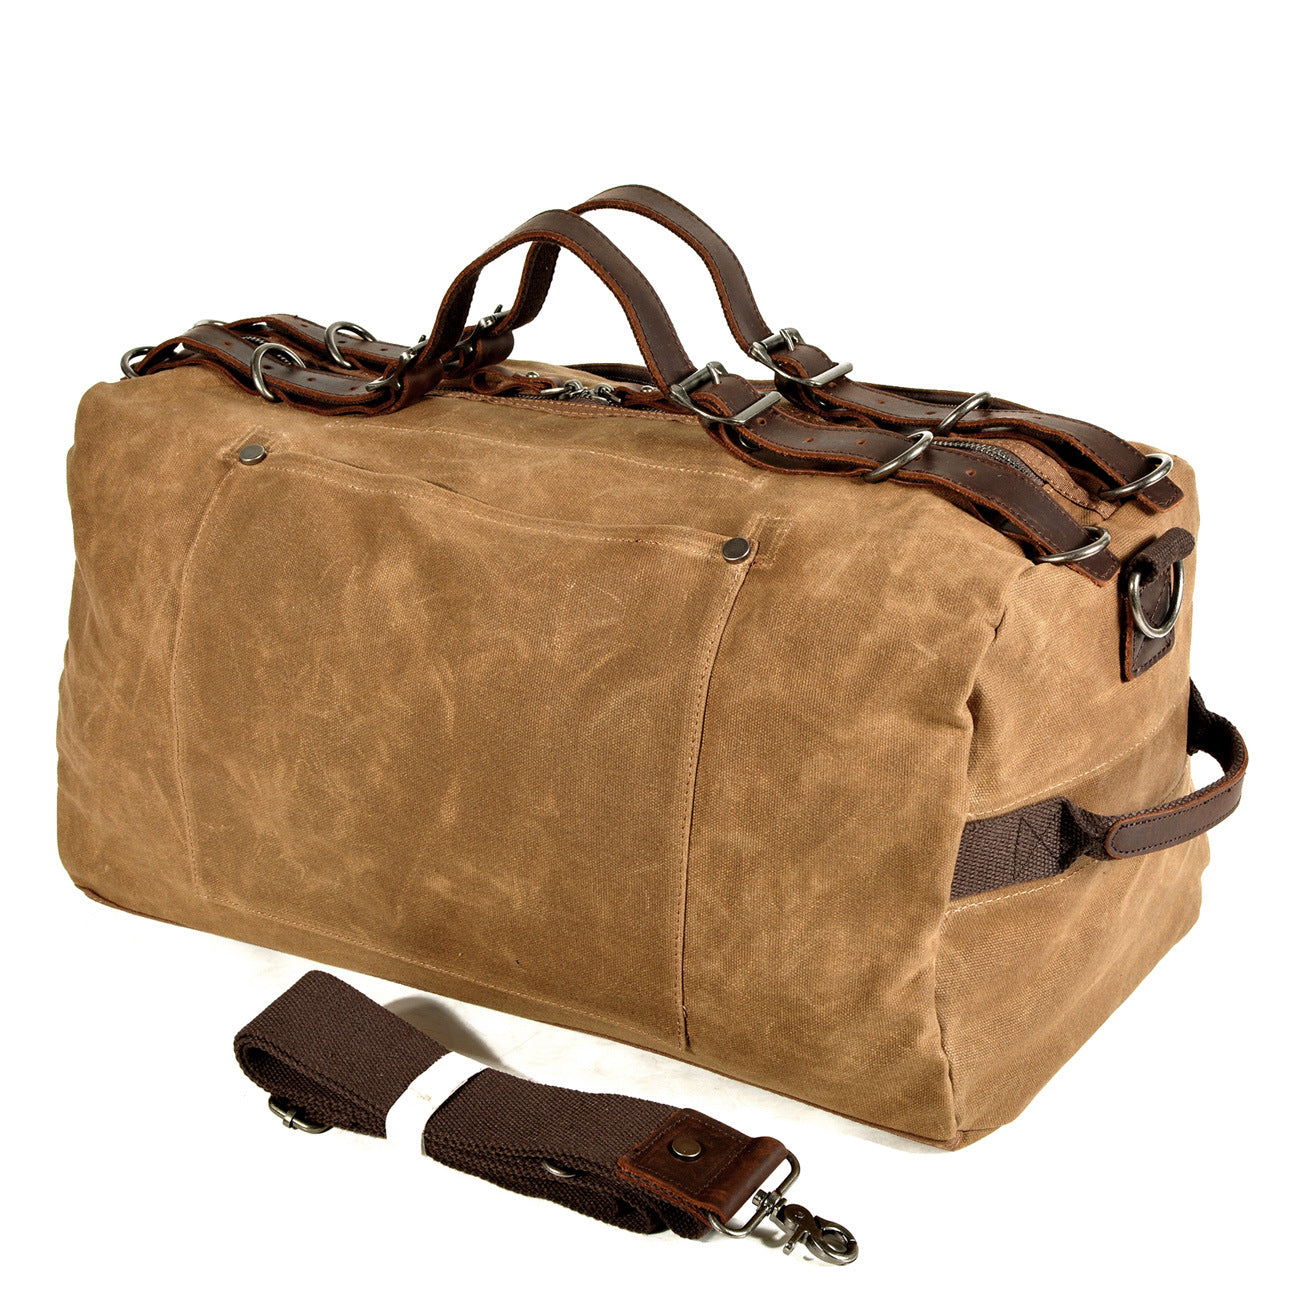 MBL034 Online shopping china vintage style mens waterproof canvas leather travel duffel bag